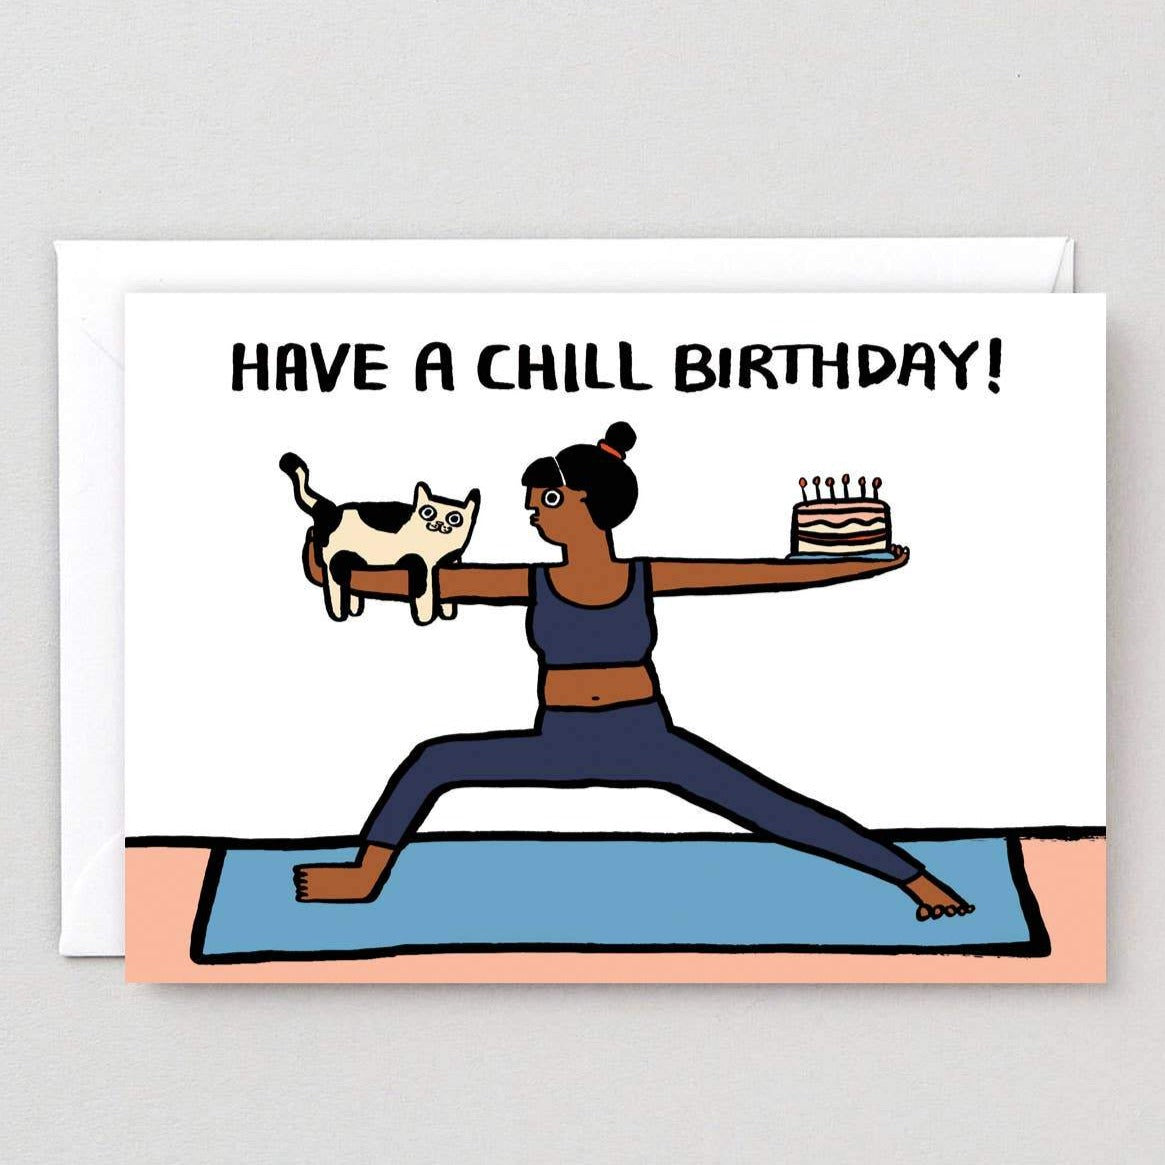 Have a Chill Birthday